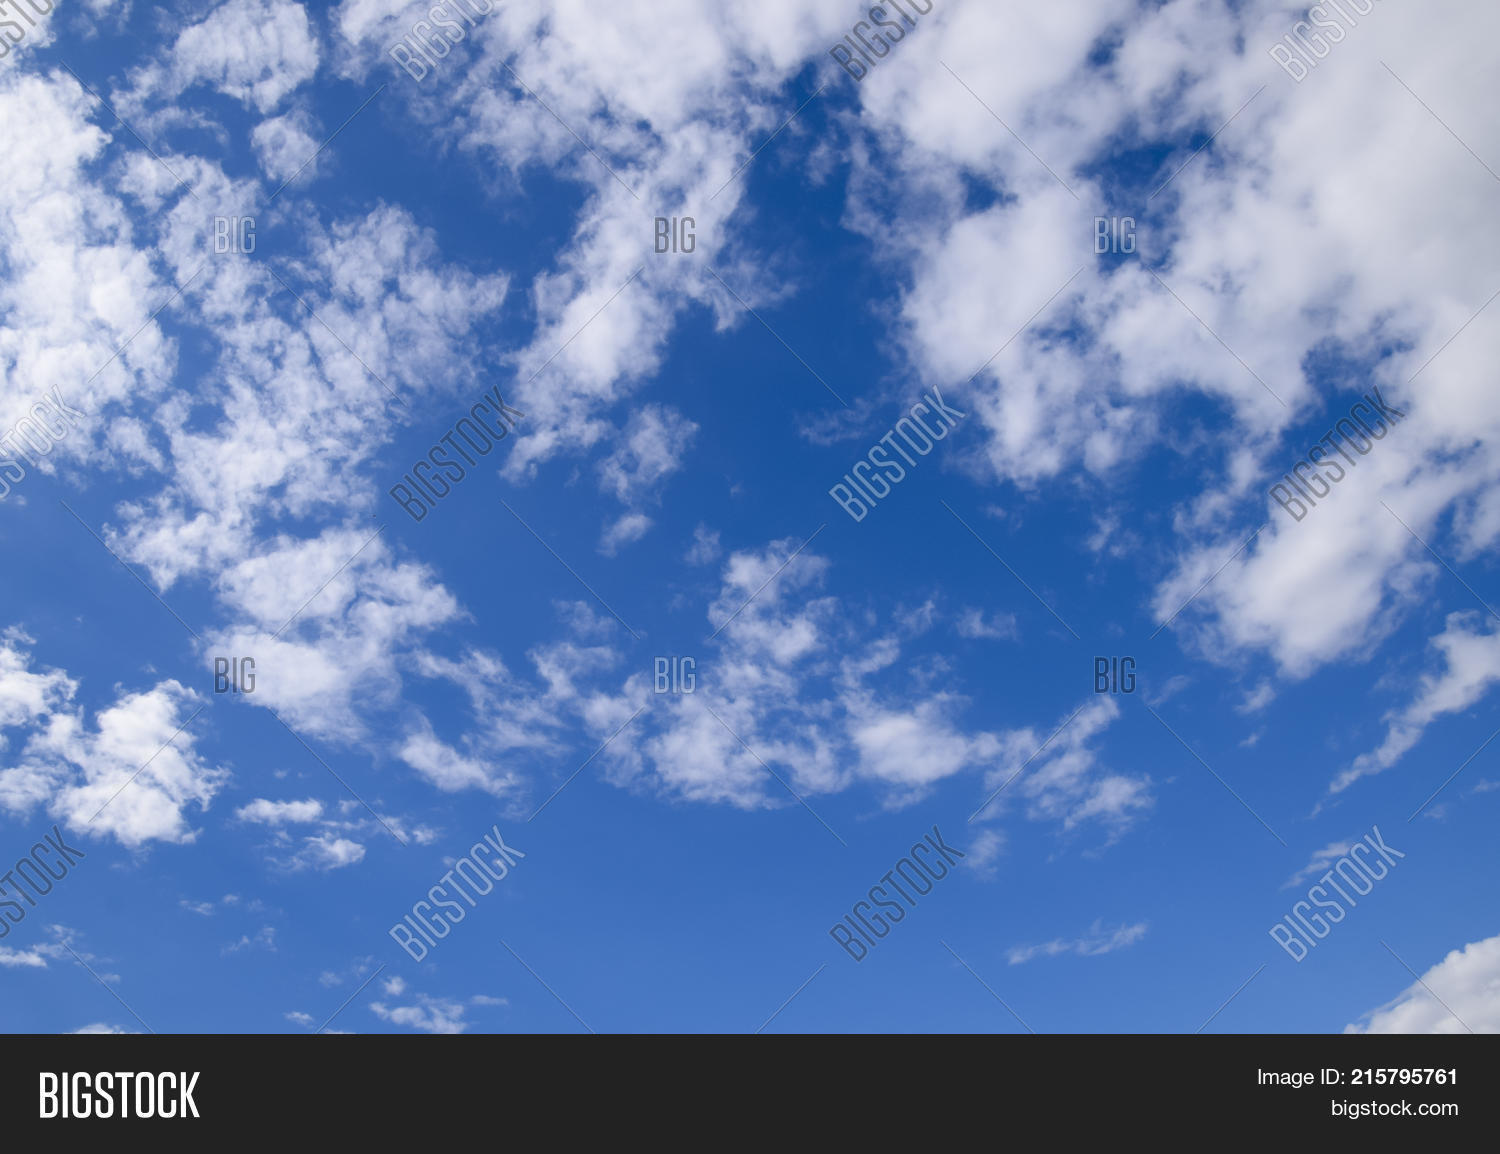 atmosphere,autumn,background,beam,beautiful,beauty,blue,calm,cirrus,clear,climate,cloud,cloudscape,cloudy,color,cumulus,day,environment,evening,fall,fluffy,heaven,high,horizontal,idyllic,landscape,light,midday,morning,nature,nimbi,outdoor,precipitation,rainy,sky,soft,space,spring,summer,sun,sunlight,sunny,sunset,view,weather,white,winter